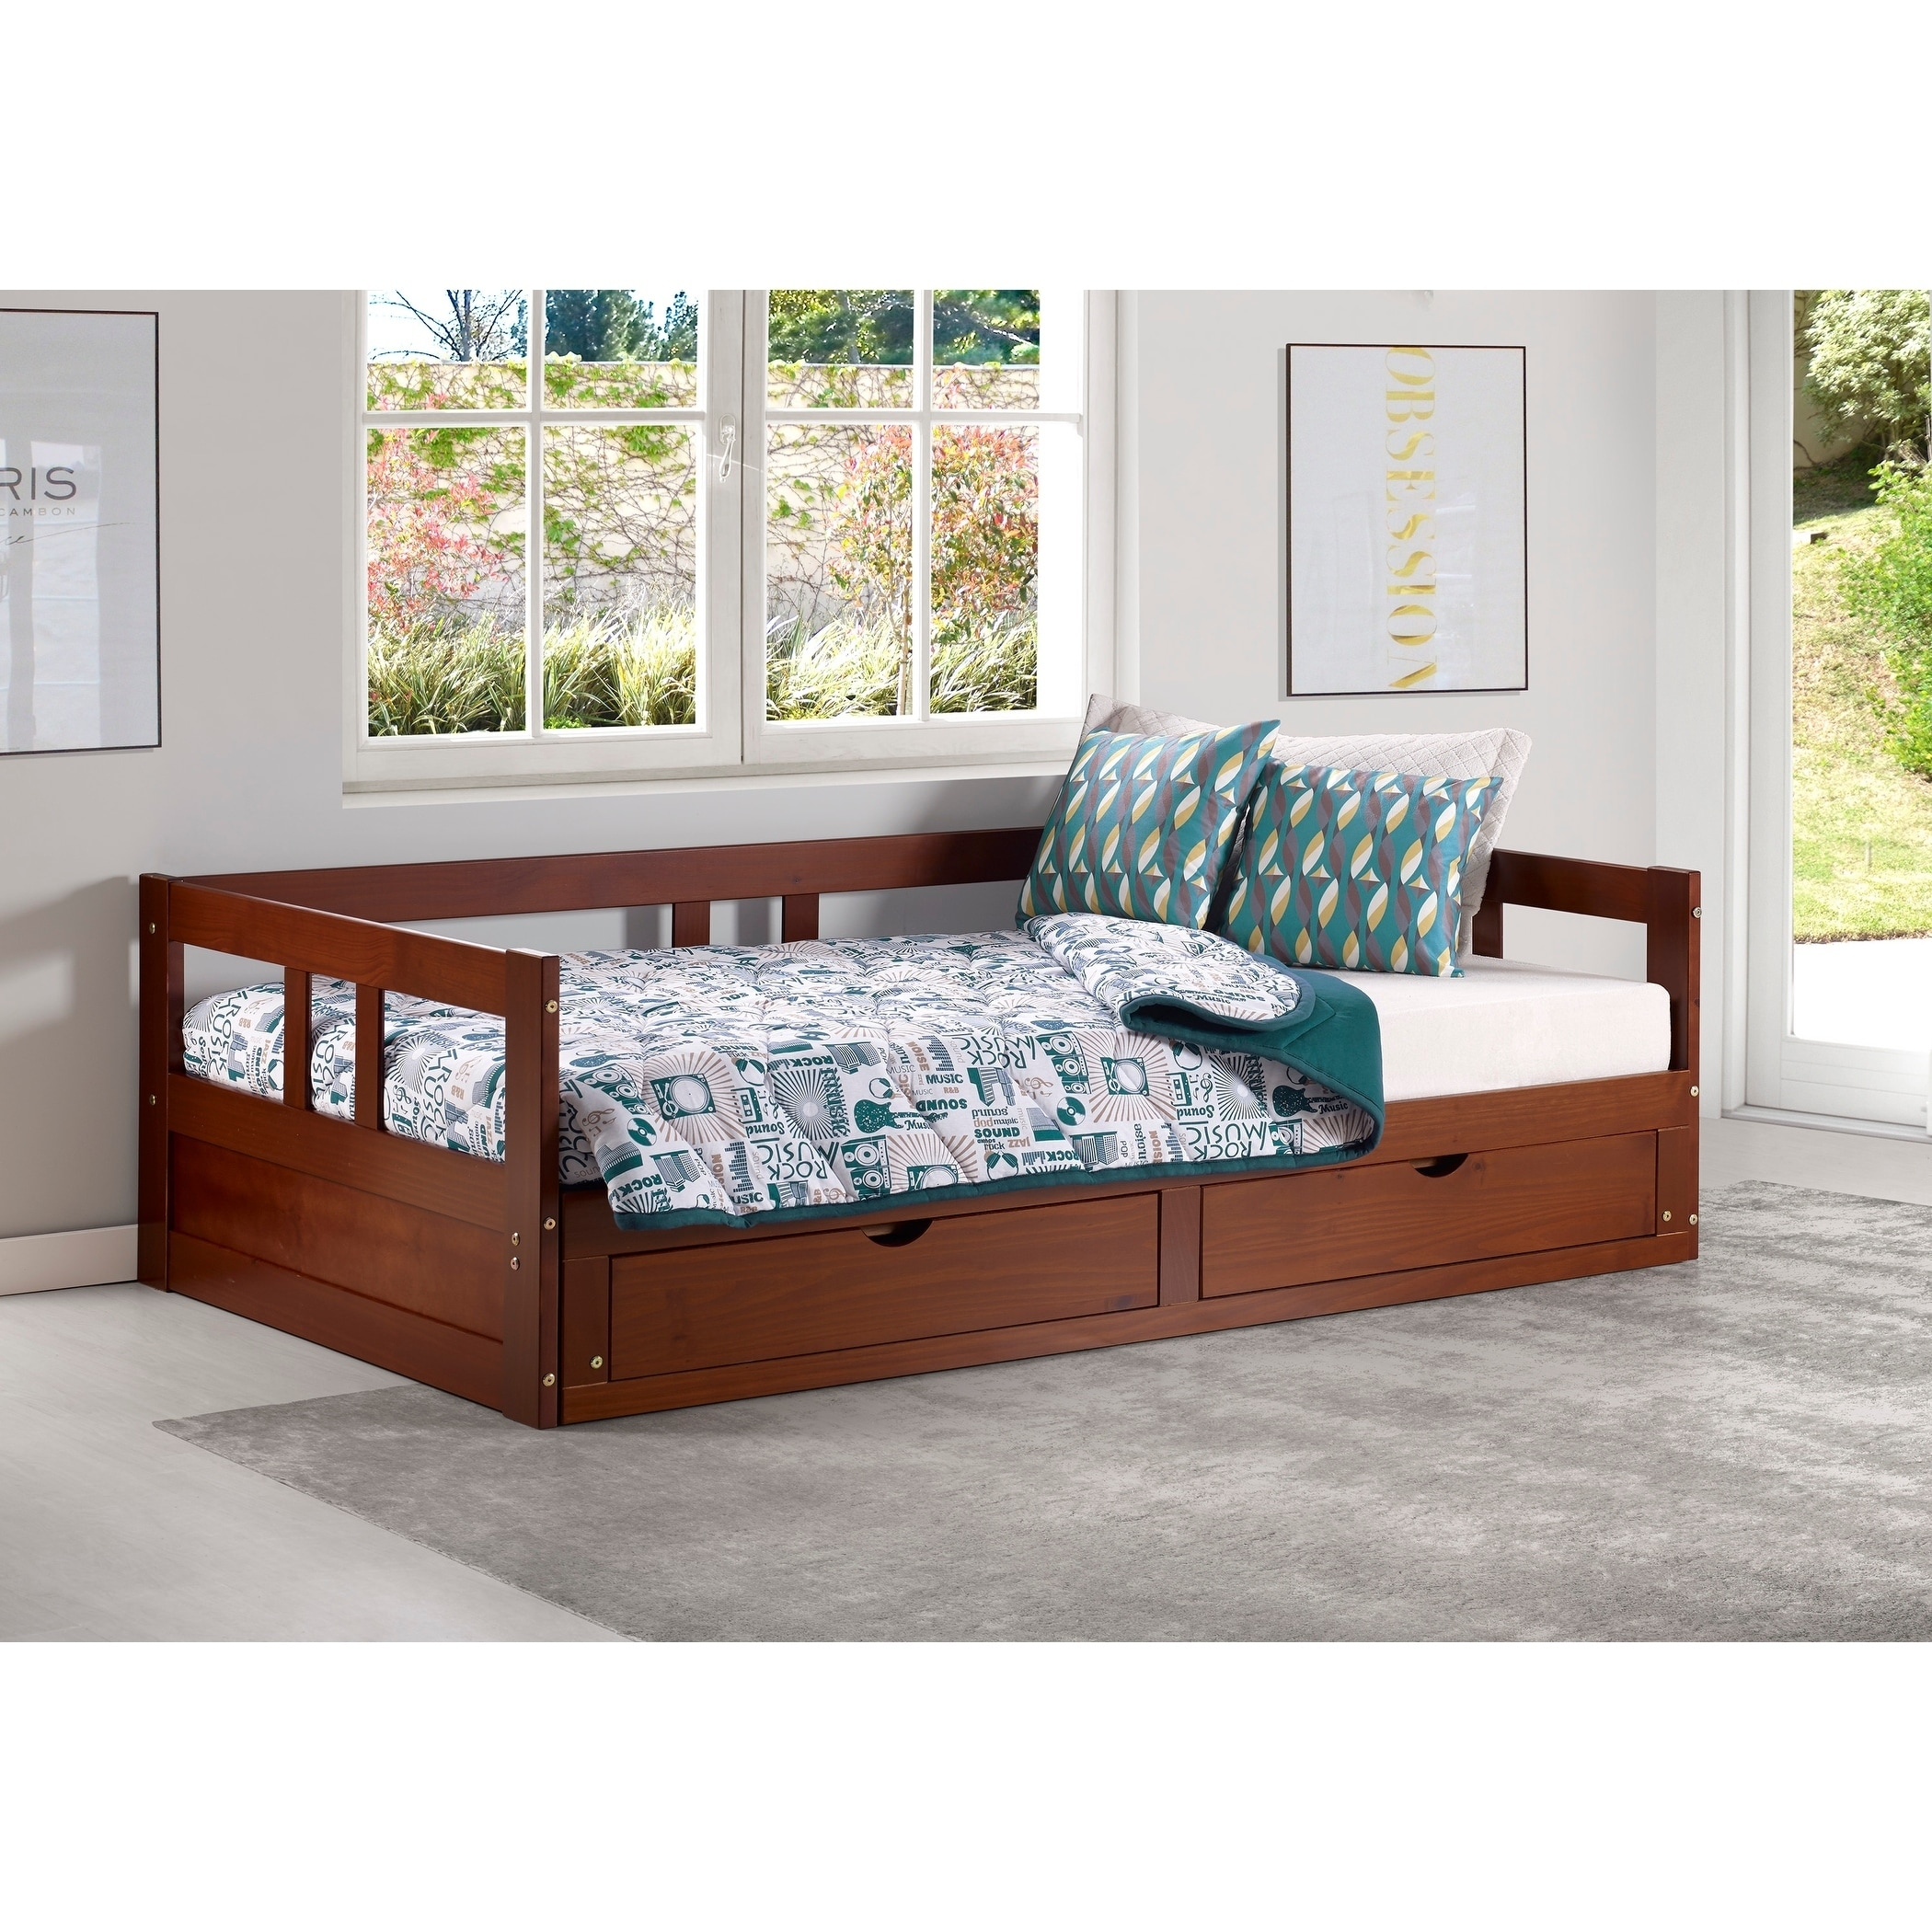 Melody Twin To King Trundle Daybed With Storage Drawers On Free Shipping Today 18105338